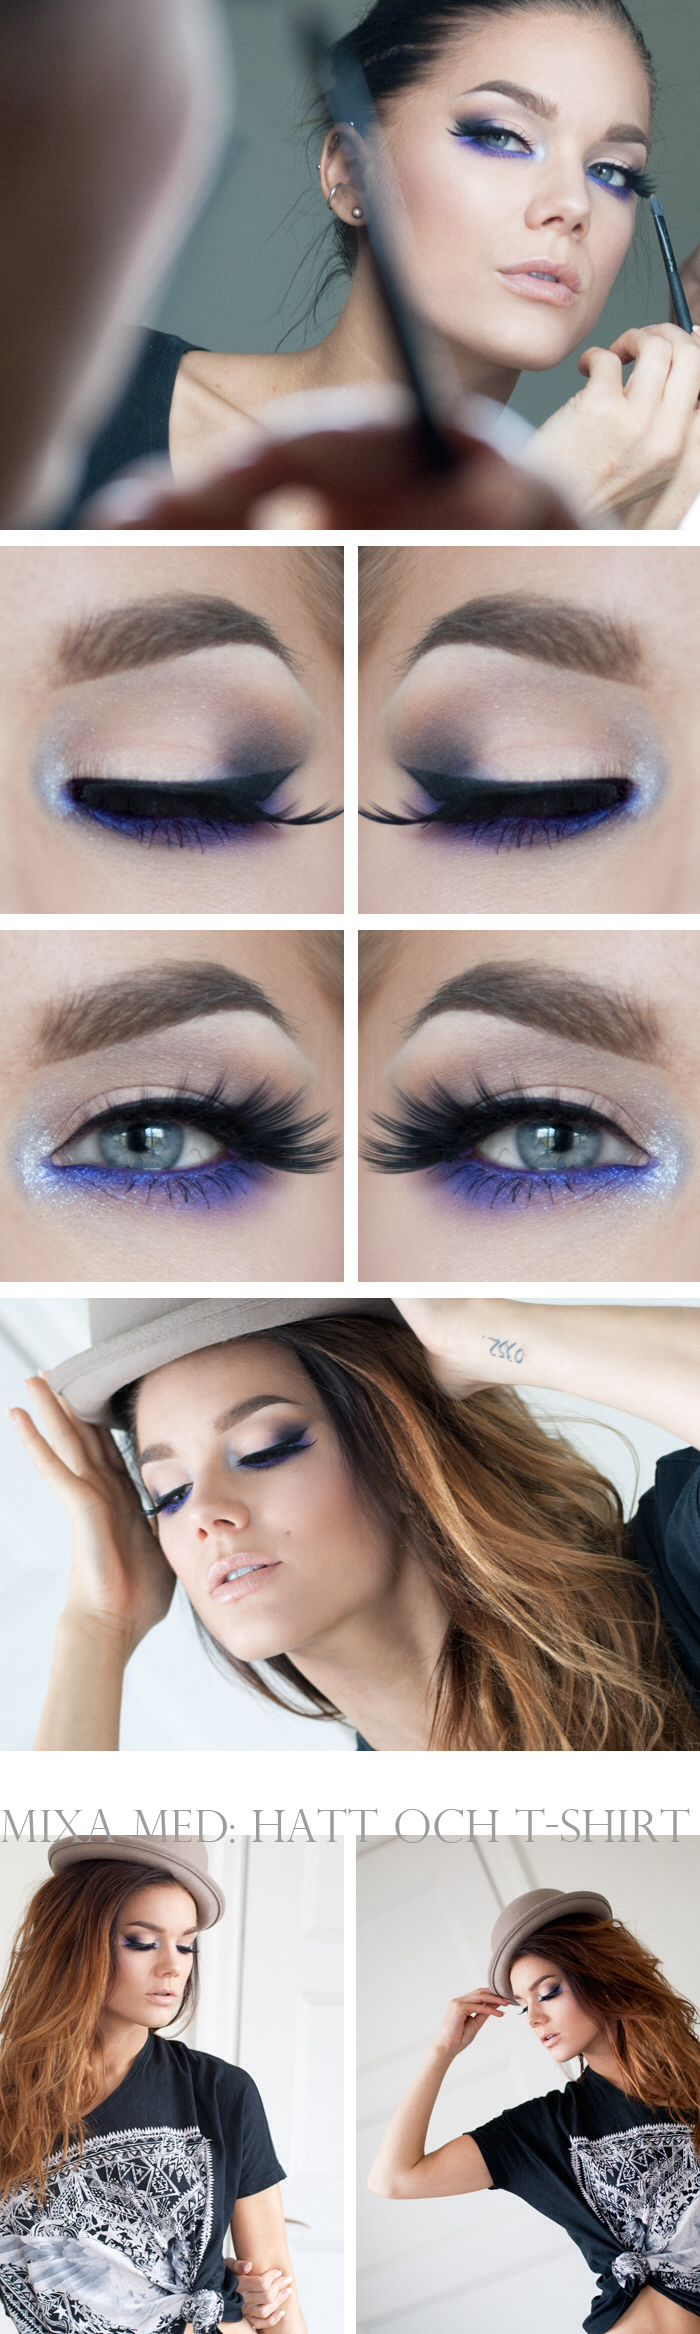 Might try this. Hopefully it turns out as well as hers. Lol